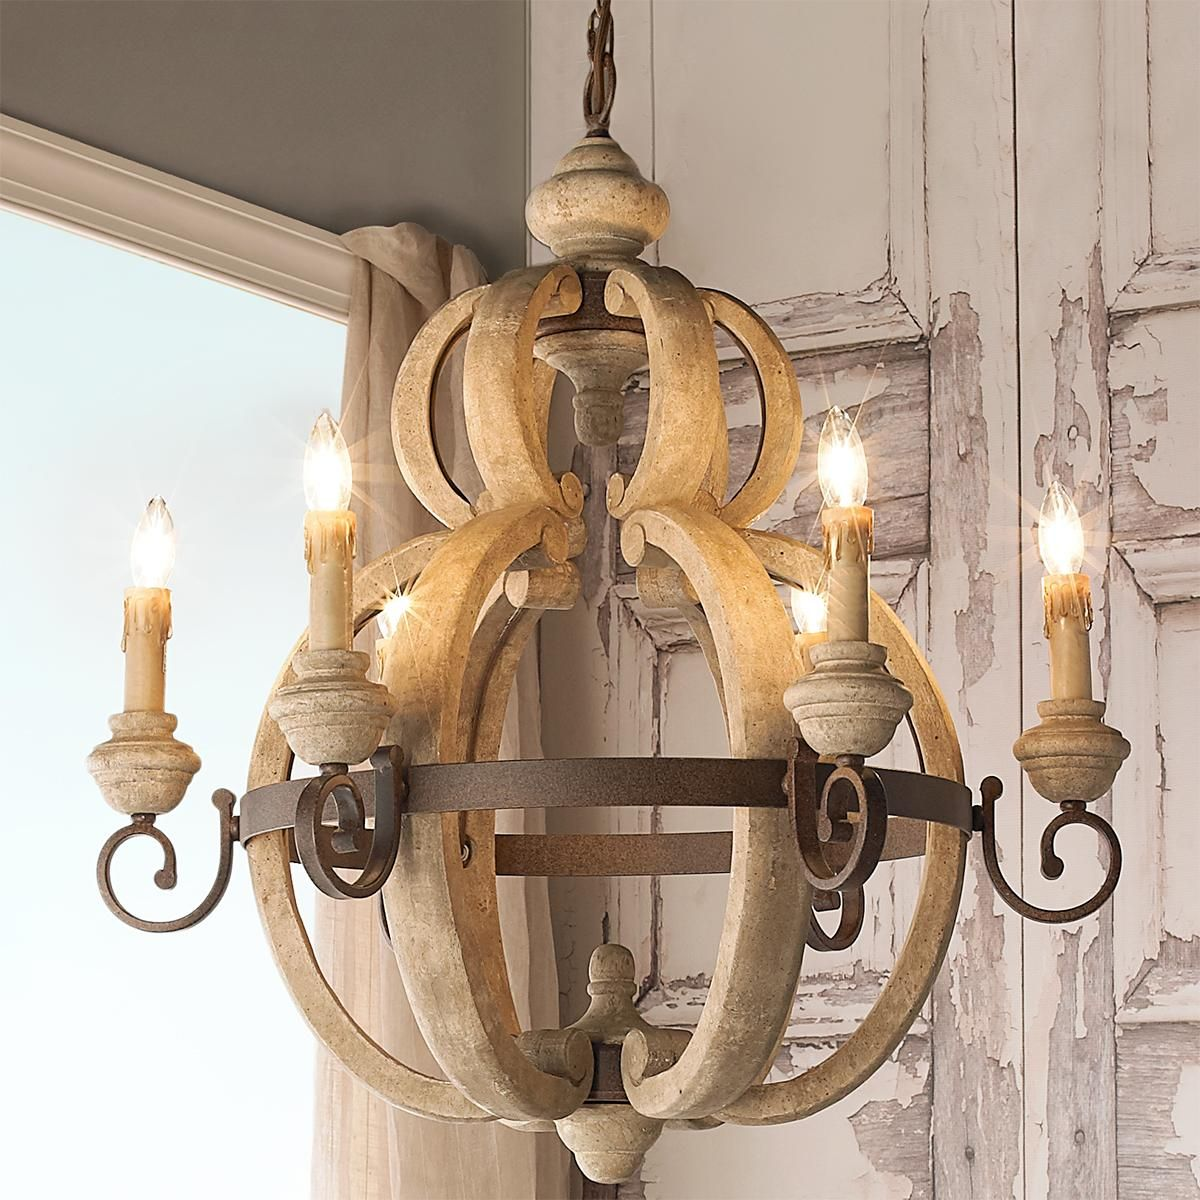 Delicieux Rustic Wood And Rusty Metal Chandelier A Charming Chandelier With Hand  Carved Wood Details And Weathered